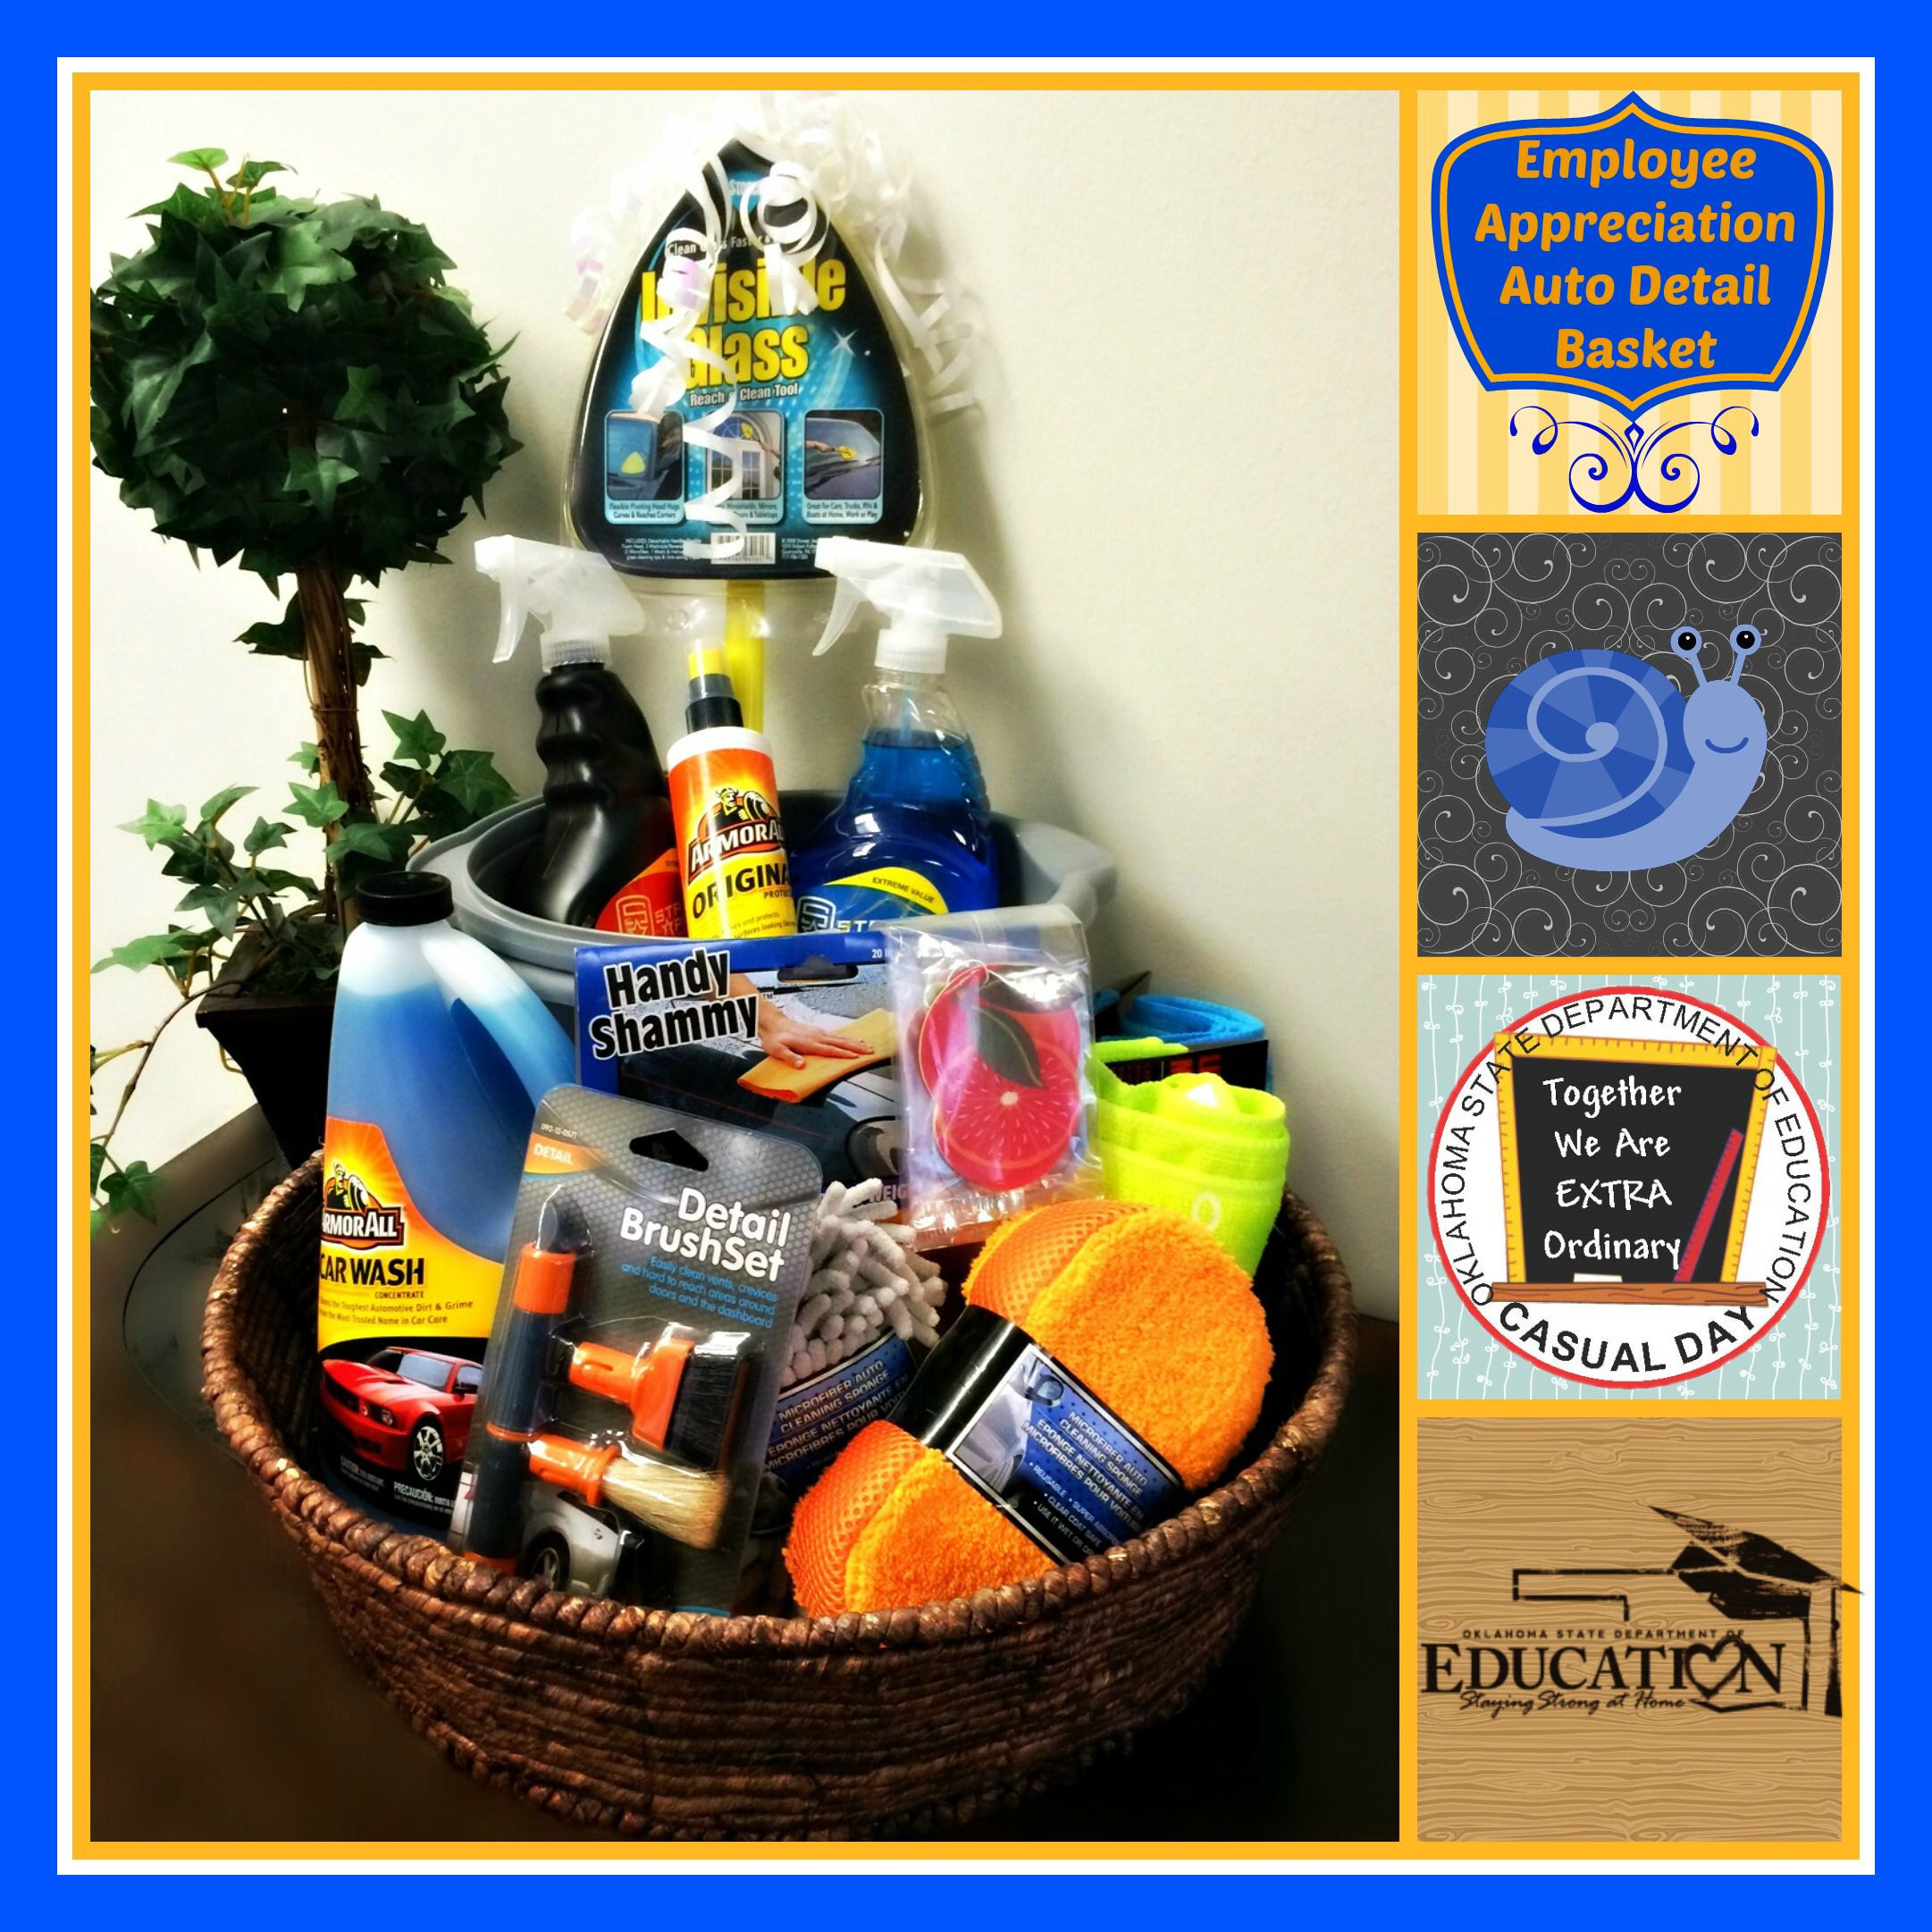 Last gift basket for 2014 Employee Appreciation Month